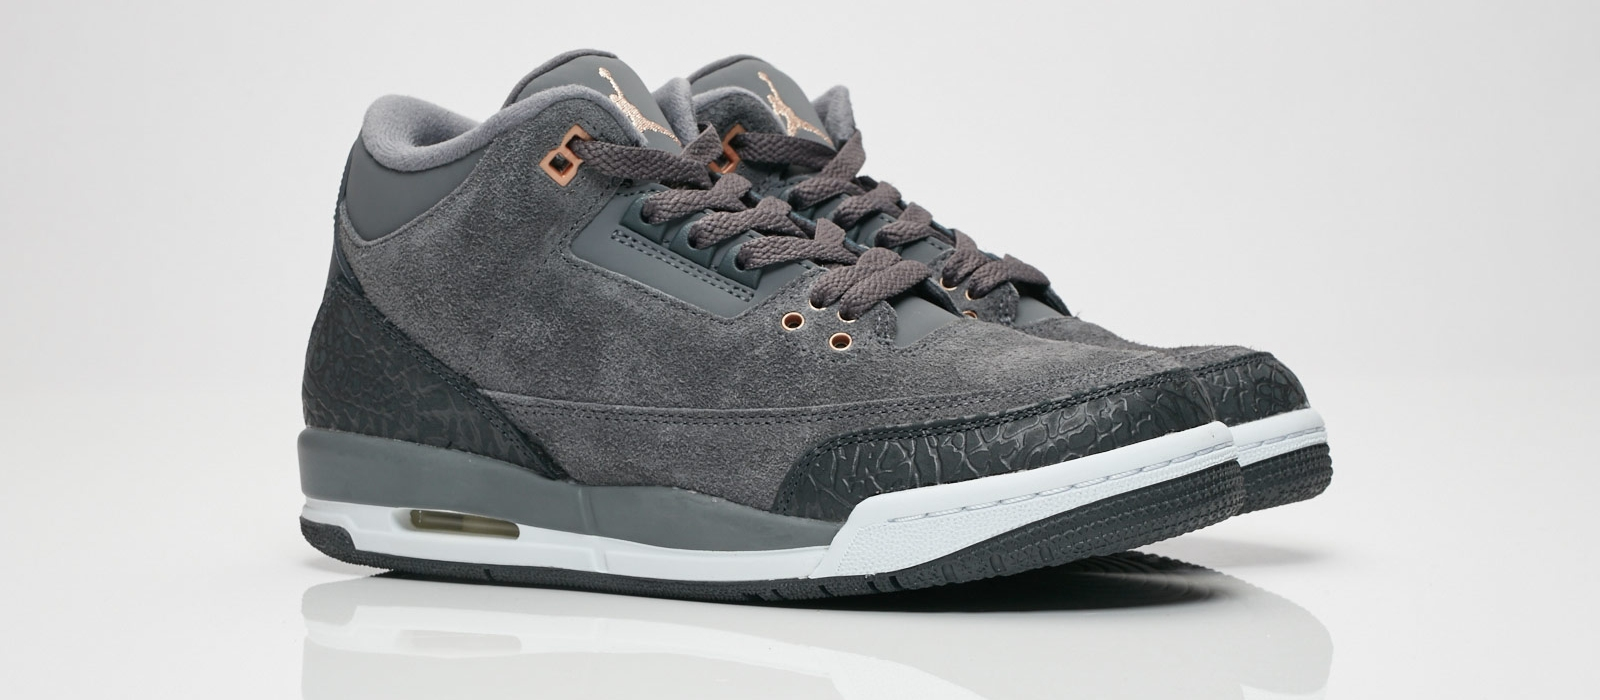 c90022bcd921 Air Jordan 3 GS Dark Grey - Air 23 - Air Jordan Release Dates ...